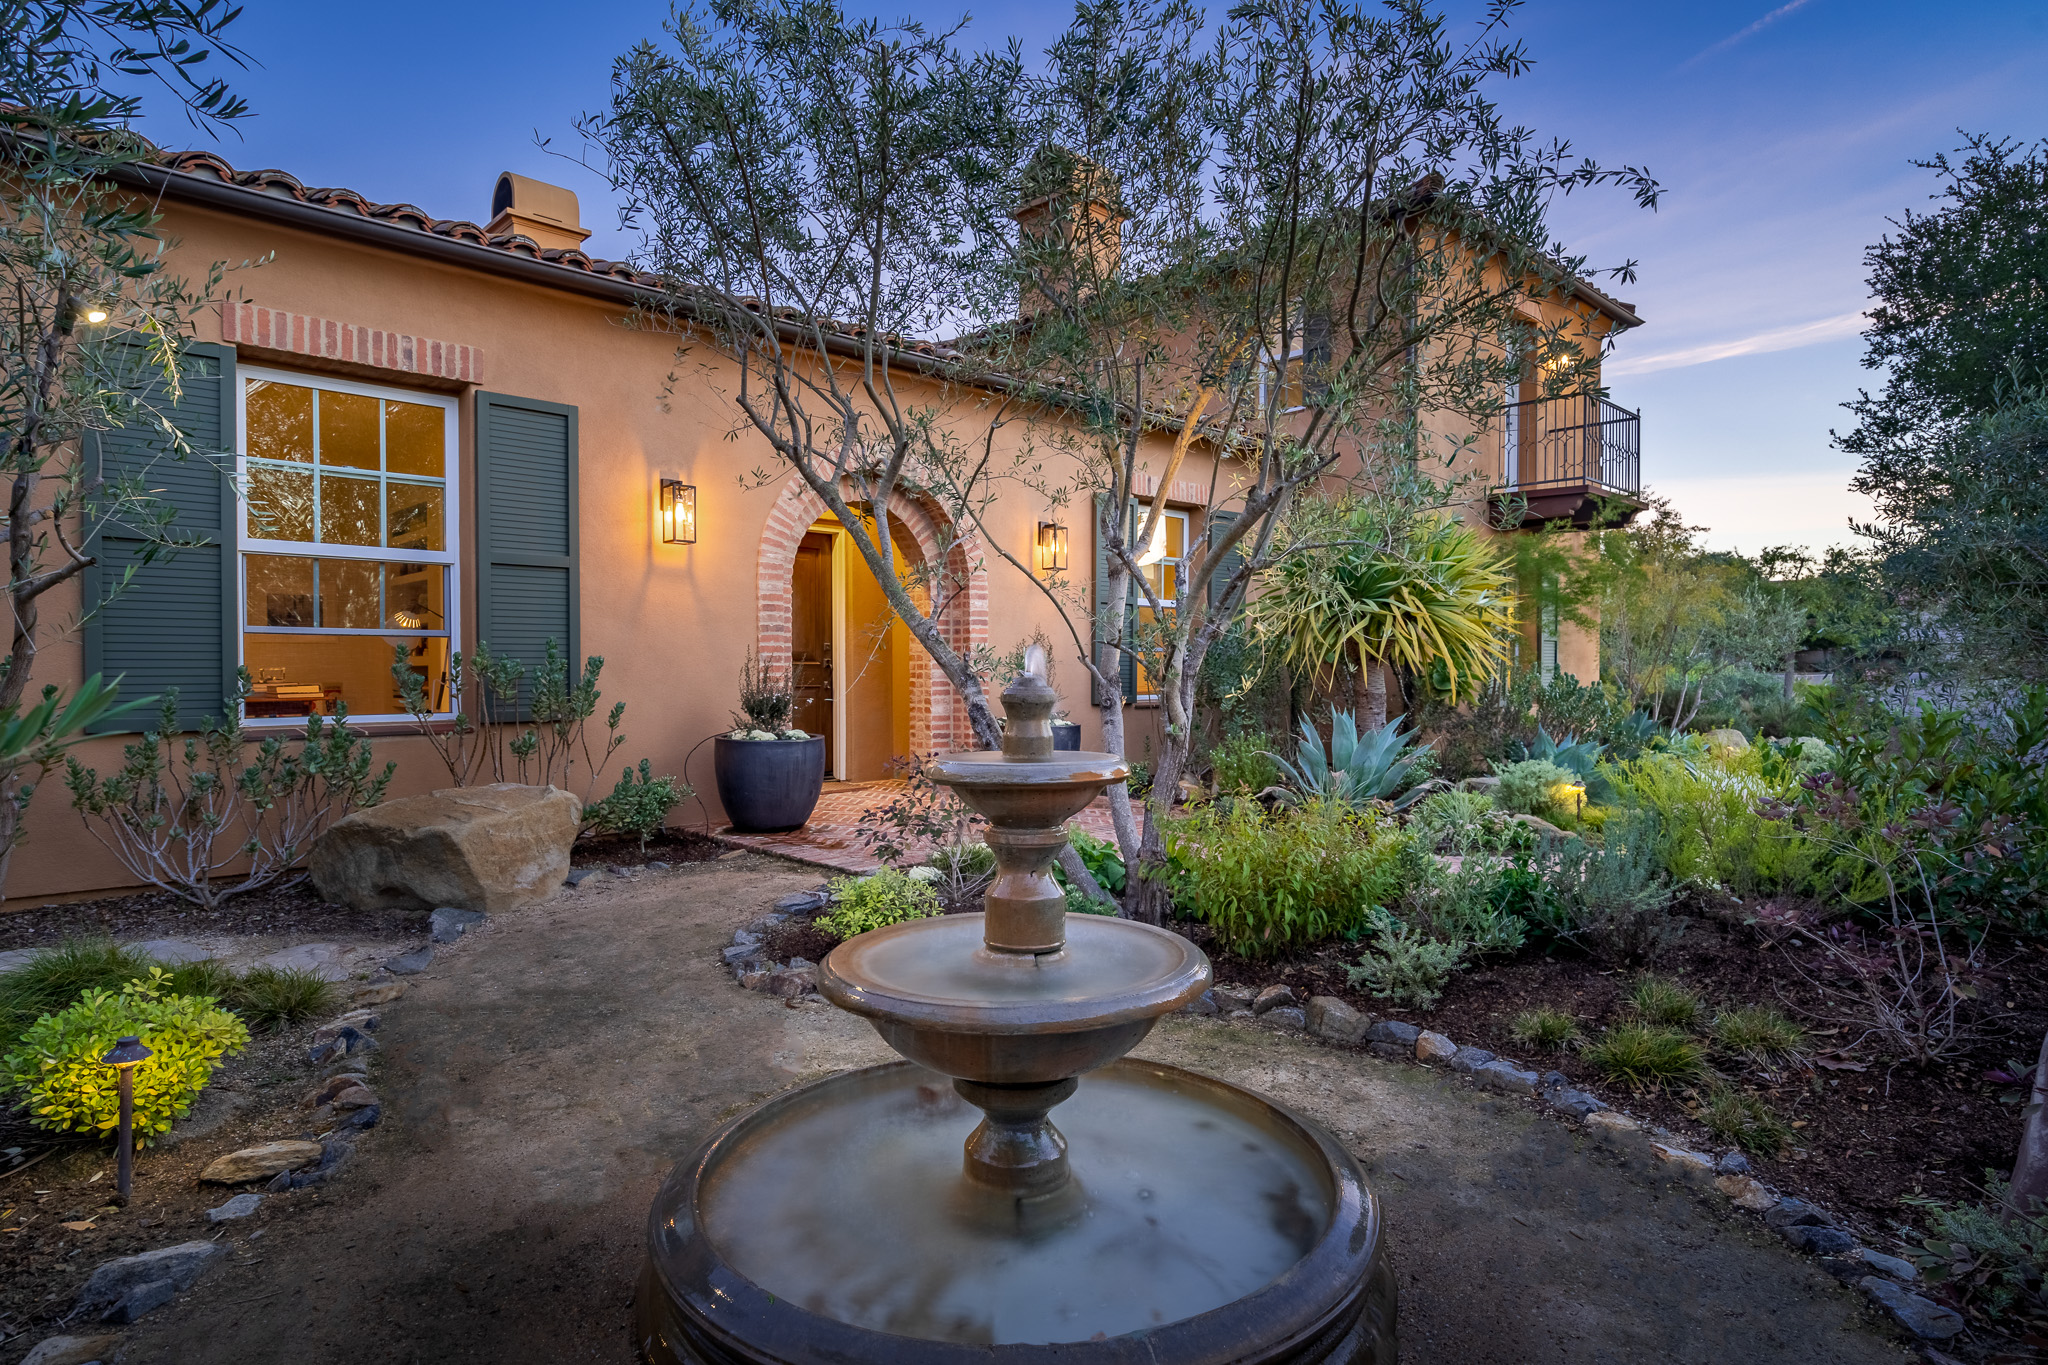 Sold 2021 Laura Represented Seller -  Santaluz, CA 92127